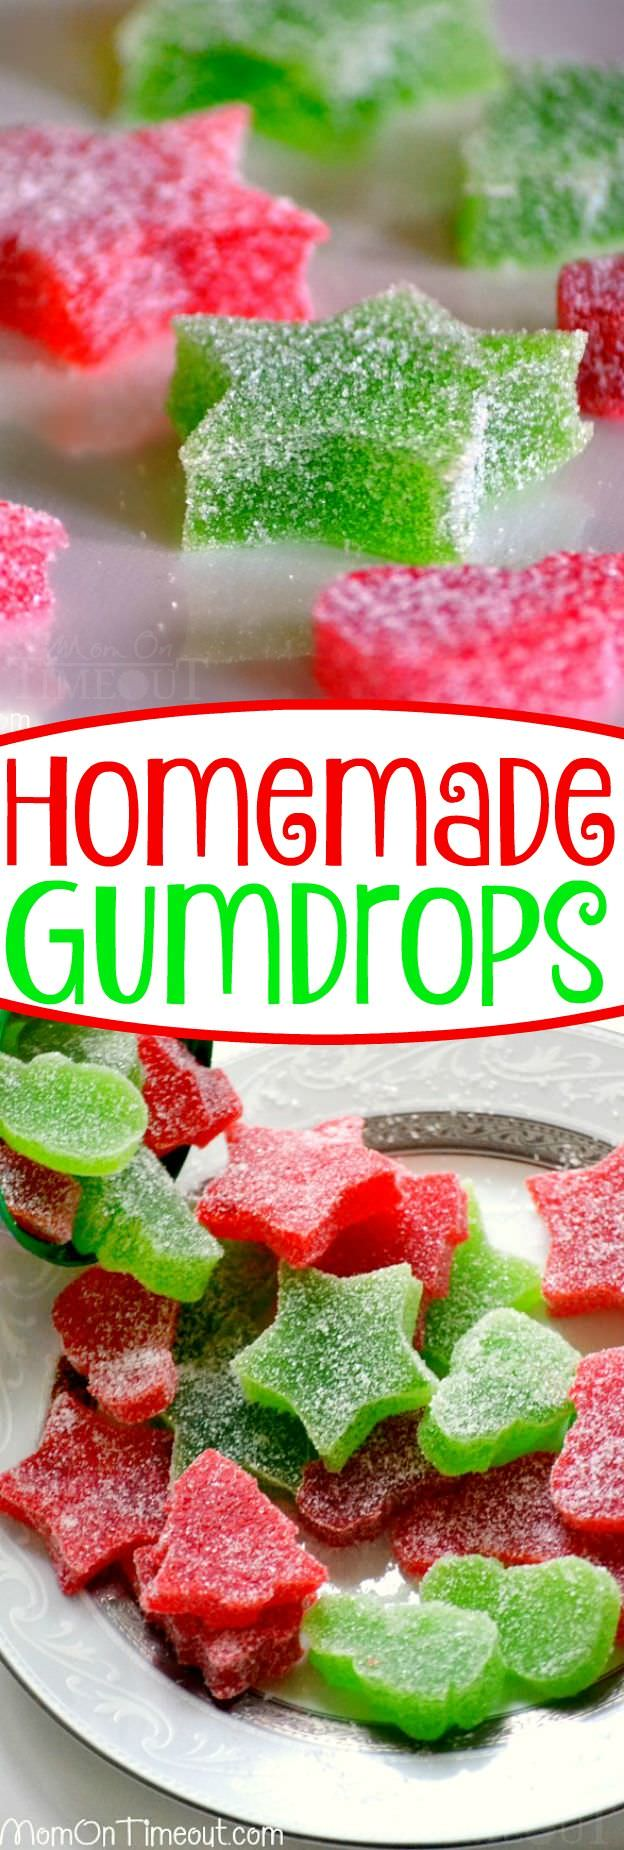 These Homemade Gumdrops are amazing! Made with just a few ingredients, these are sure to please you.